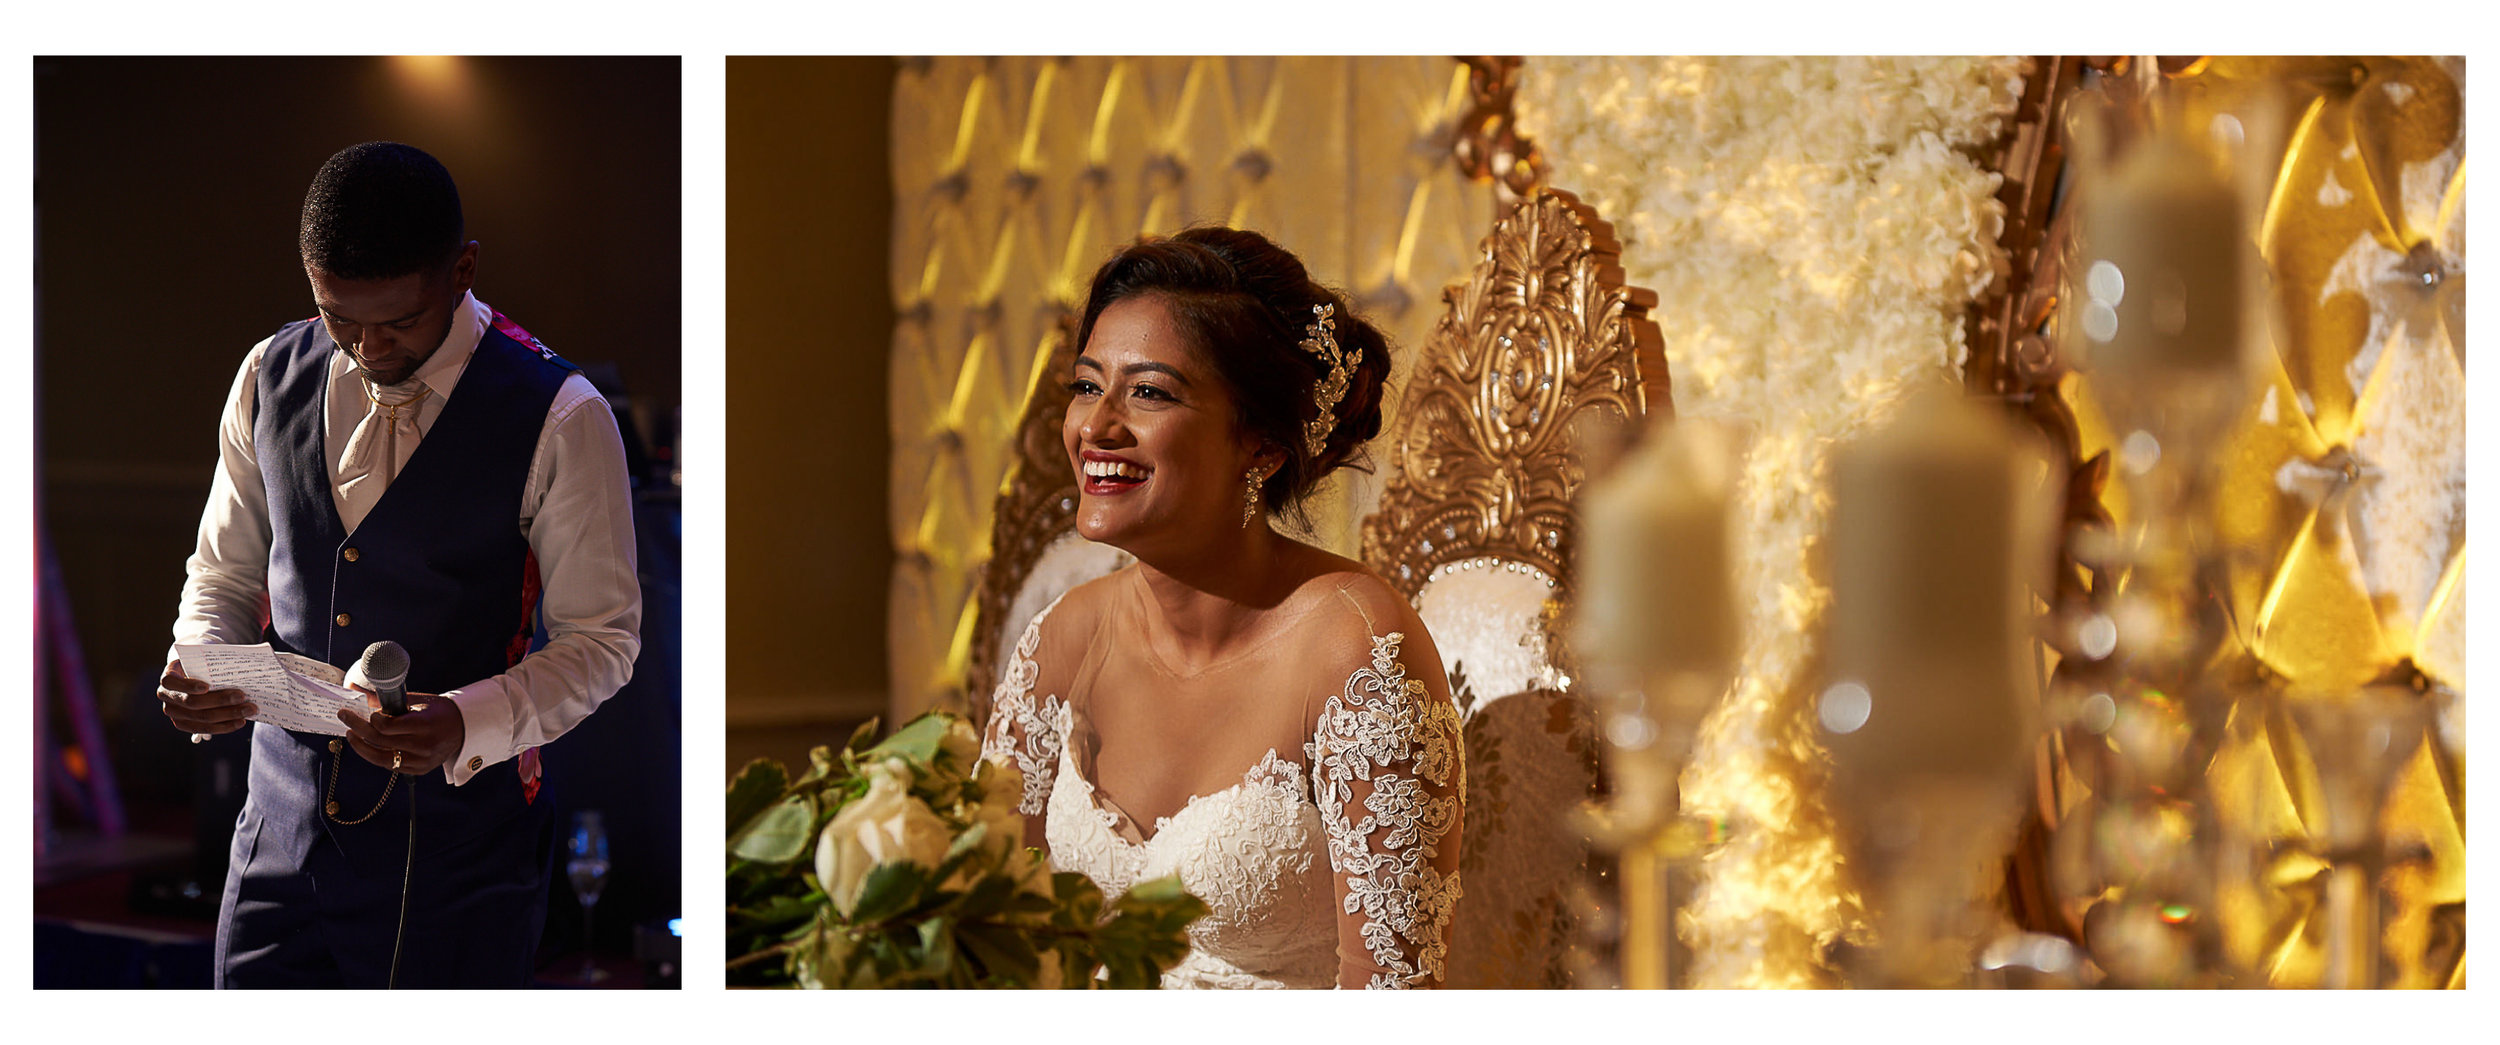 Indian Wedding Photographers SikhandDread - 30